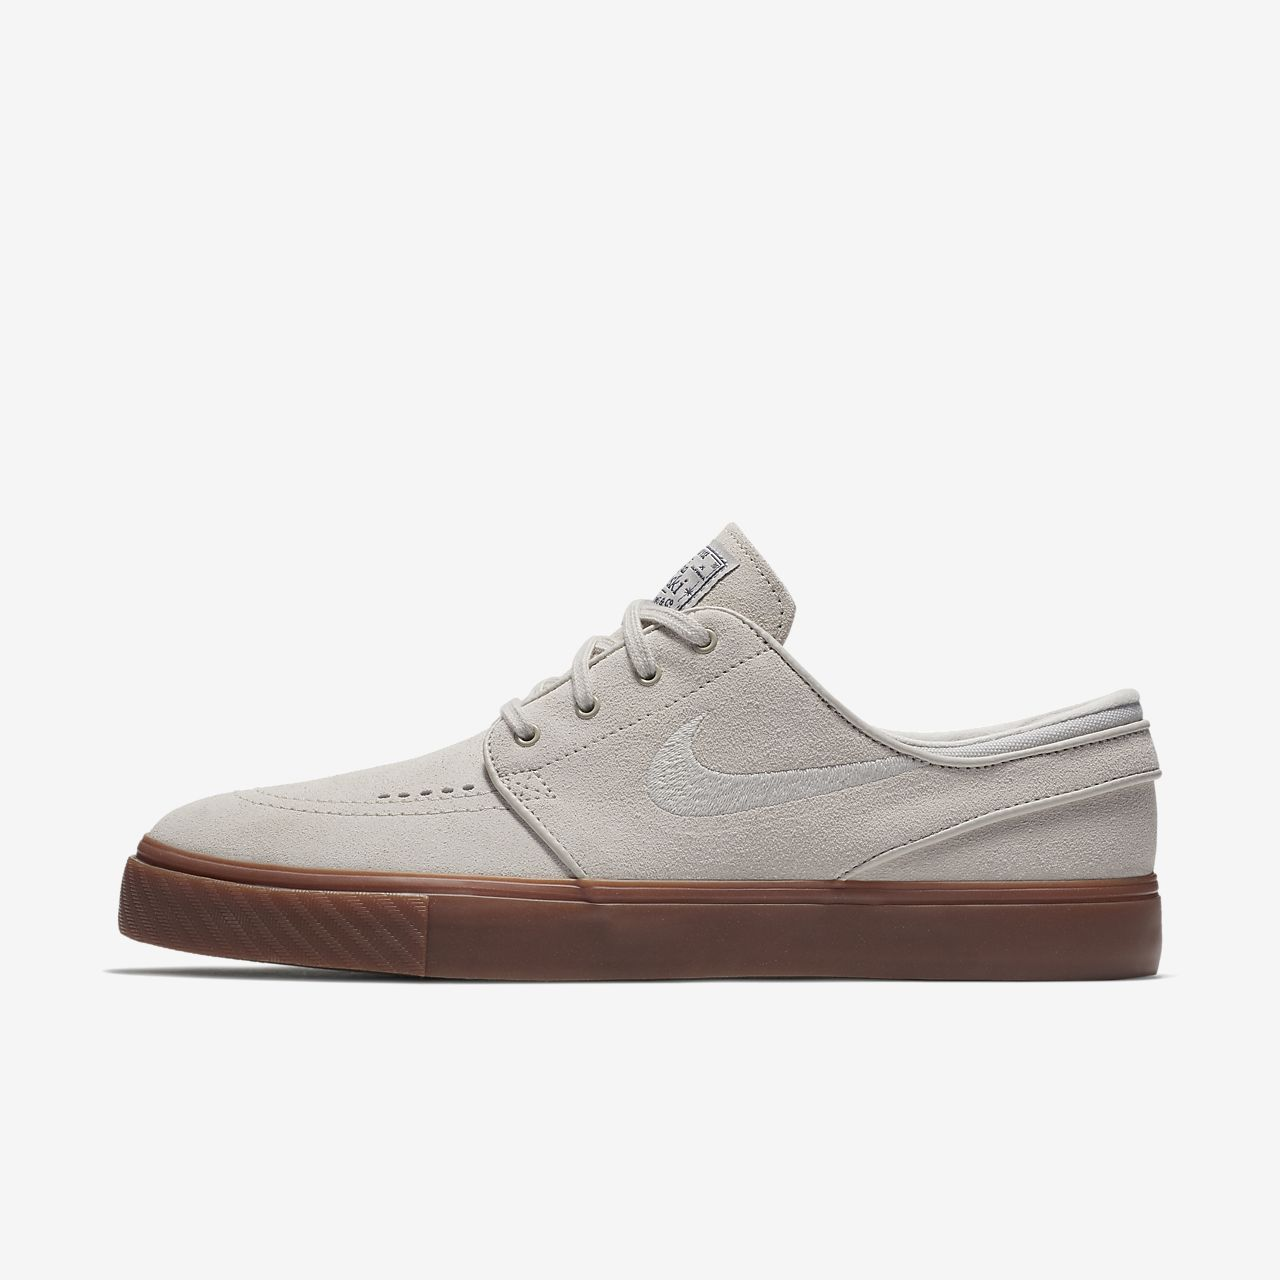 Very Goods | Nike SB Zoom Stefan Janoski Men's Skateboarding ...